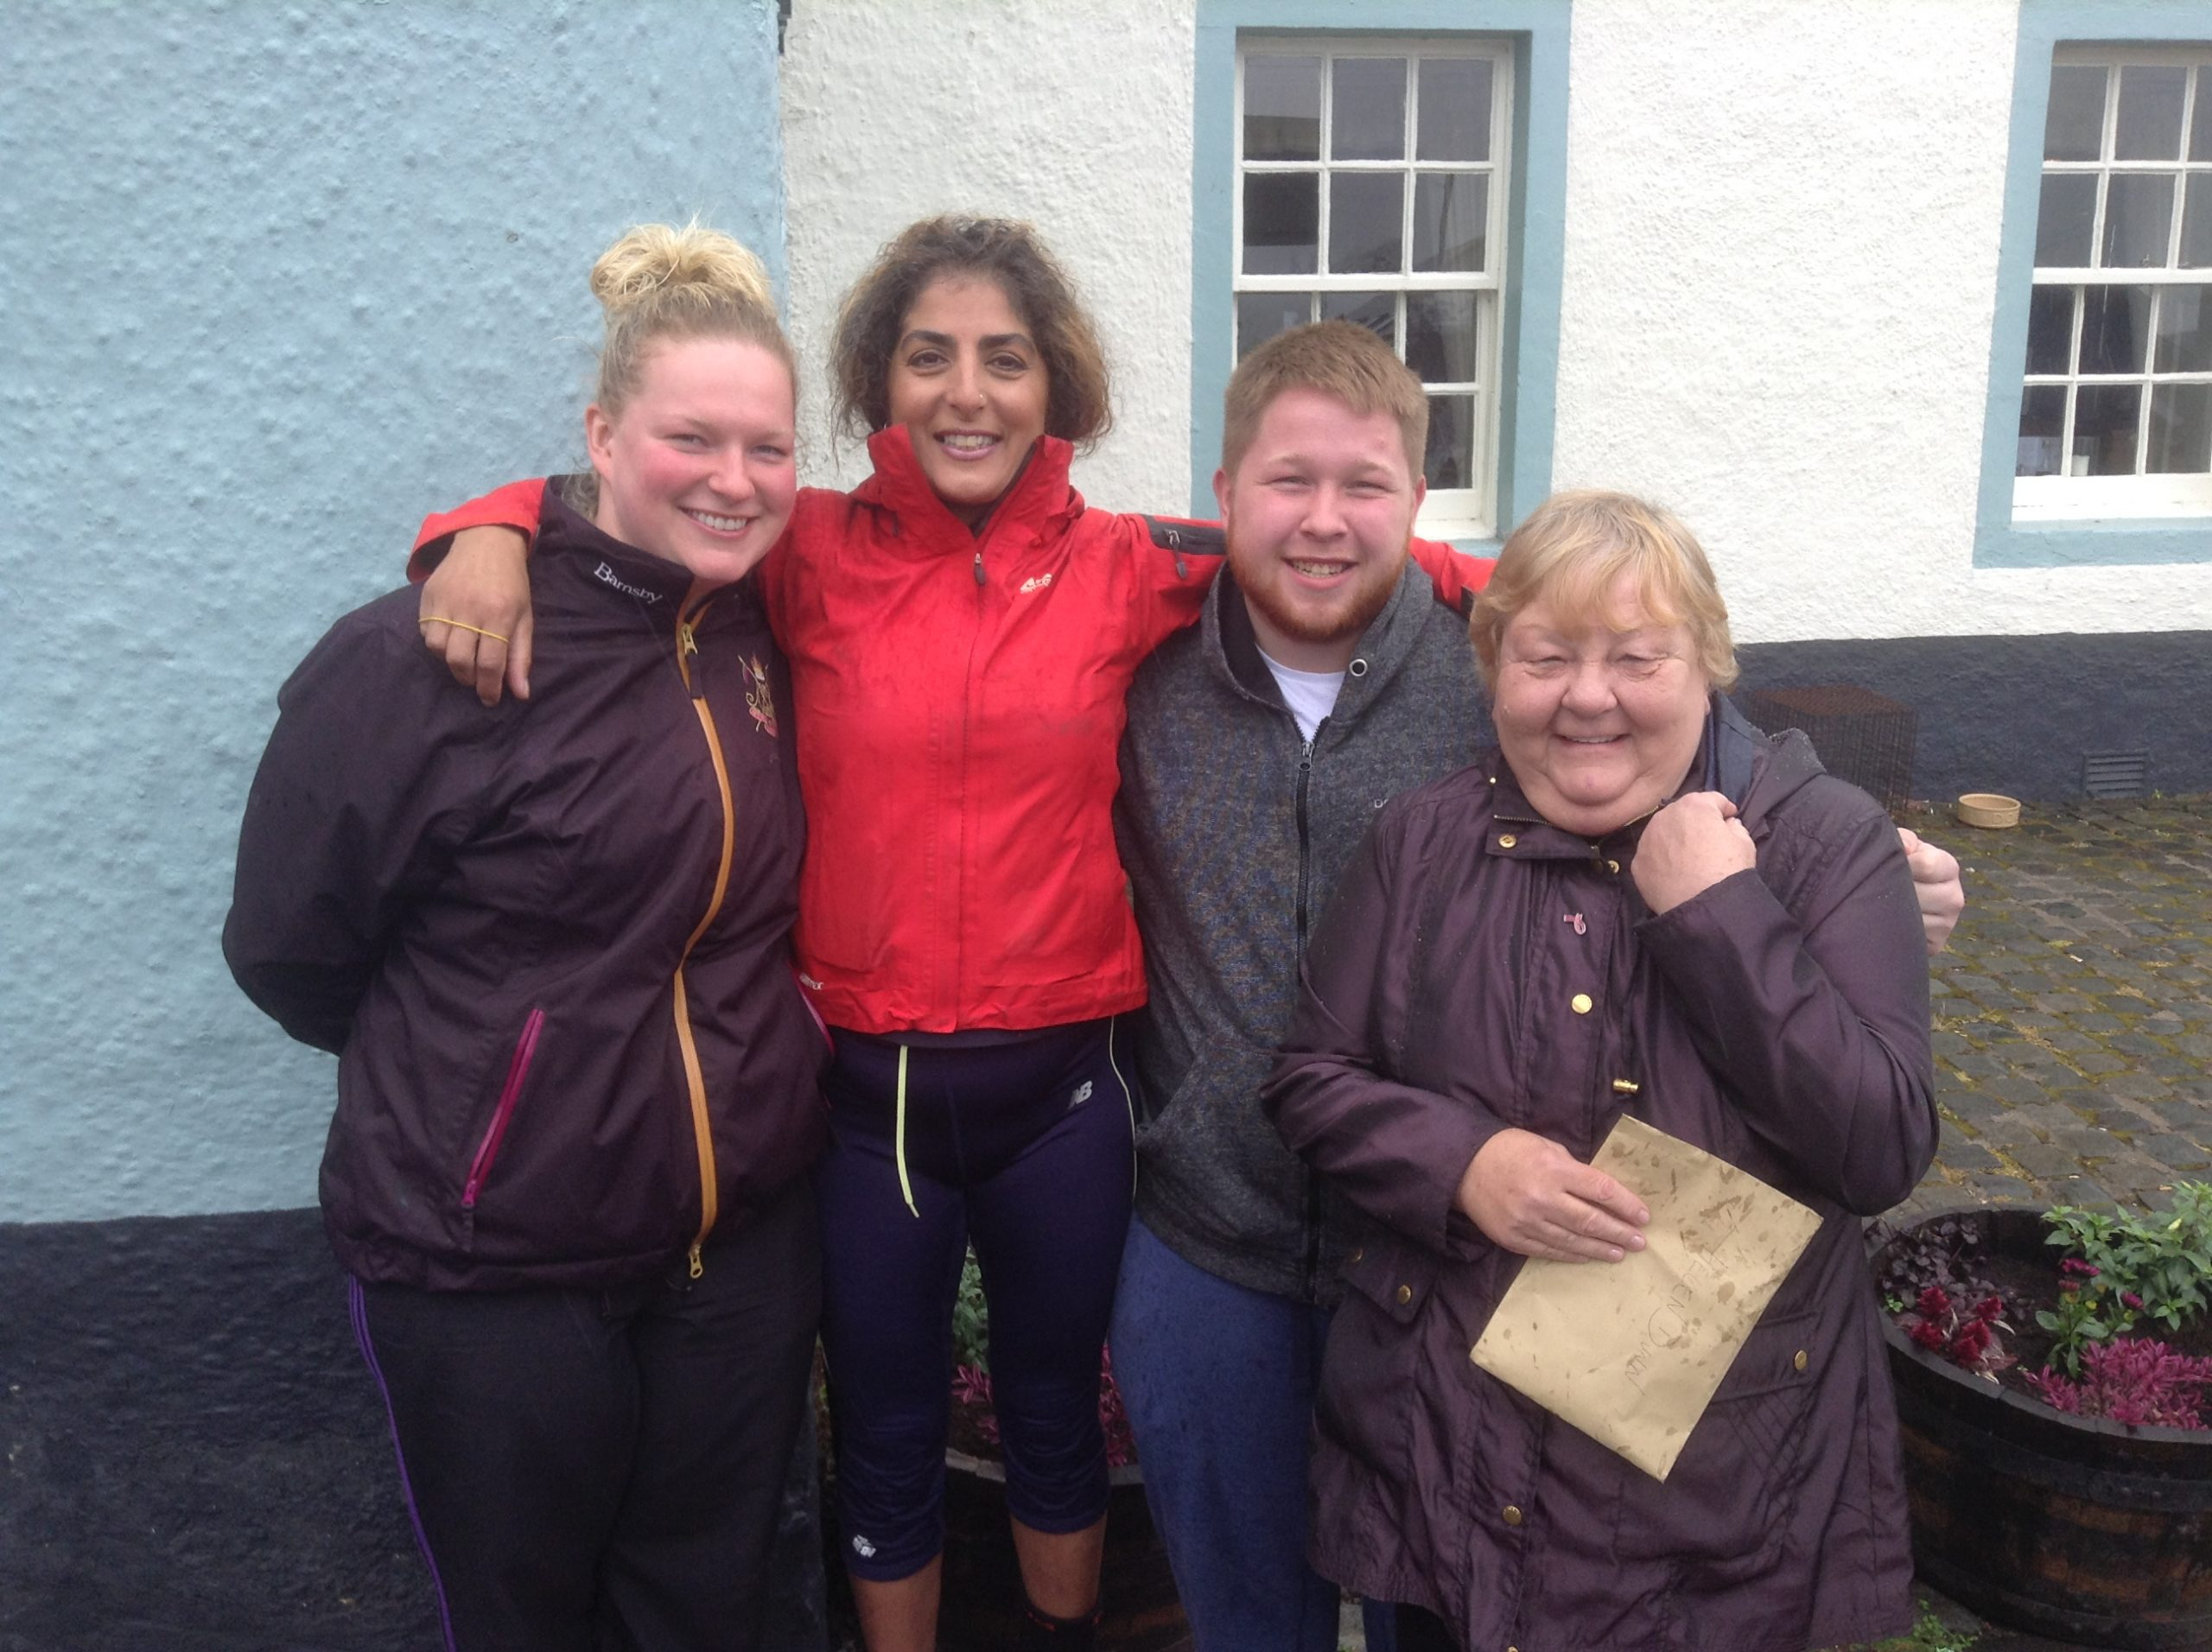 Bield Staff Complete Fearless Feat for Charity